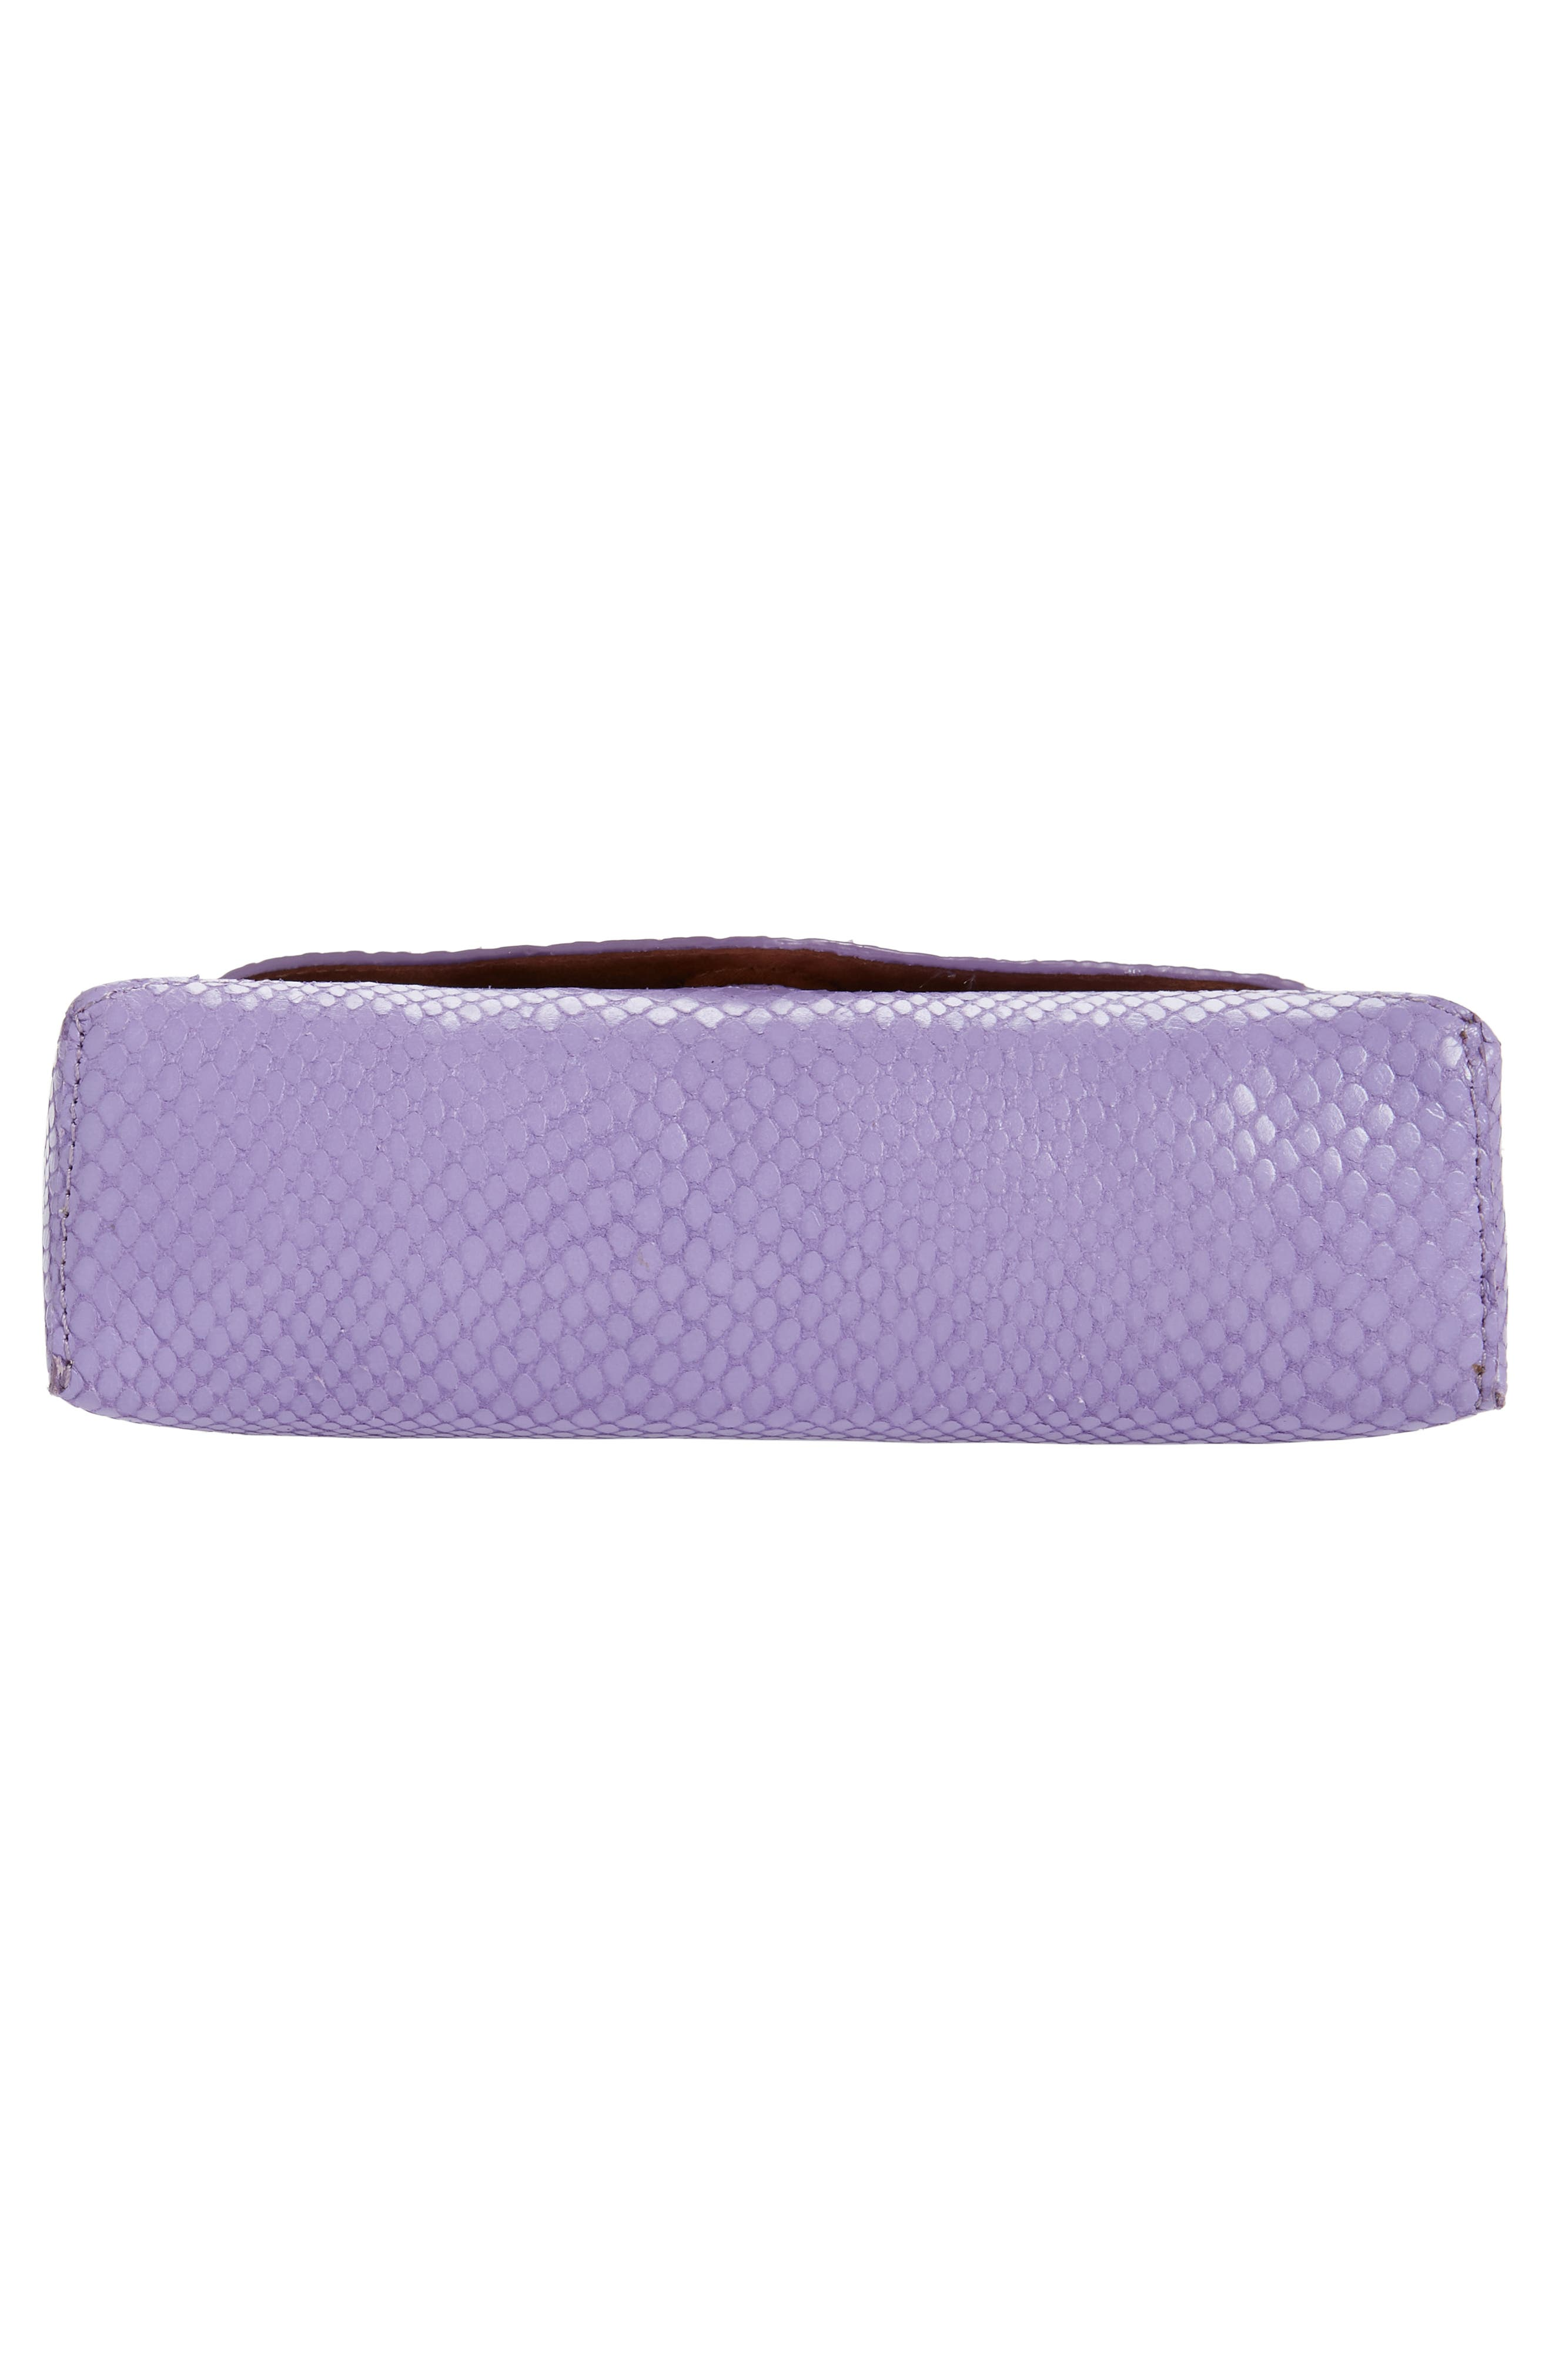 DRIES VAN NOTEN, Small Python Embossed Leather Envelope Clutch, Alternate thumbnail 6, color, LILAC